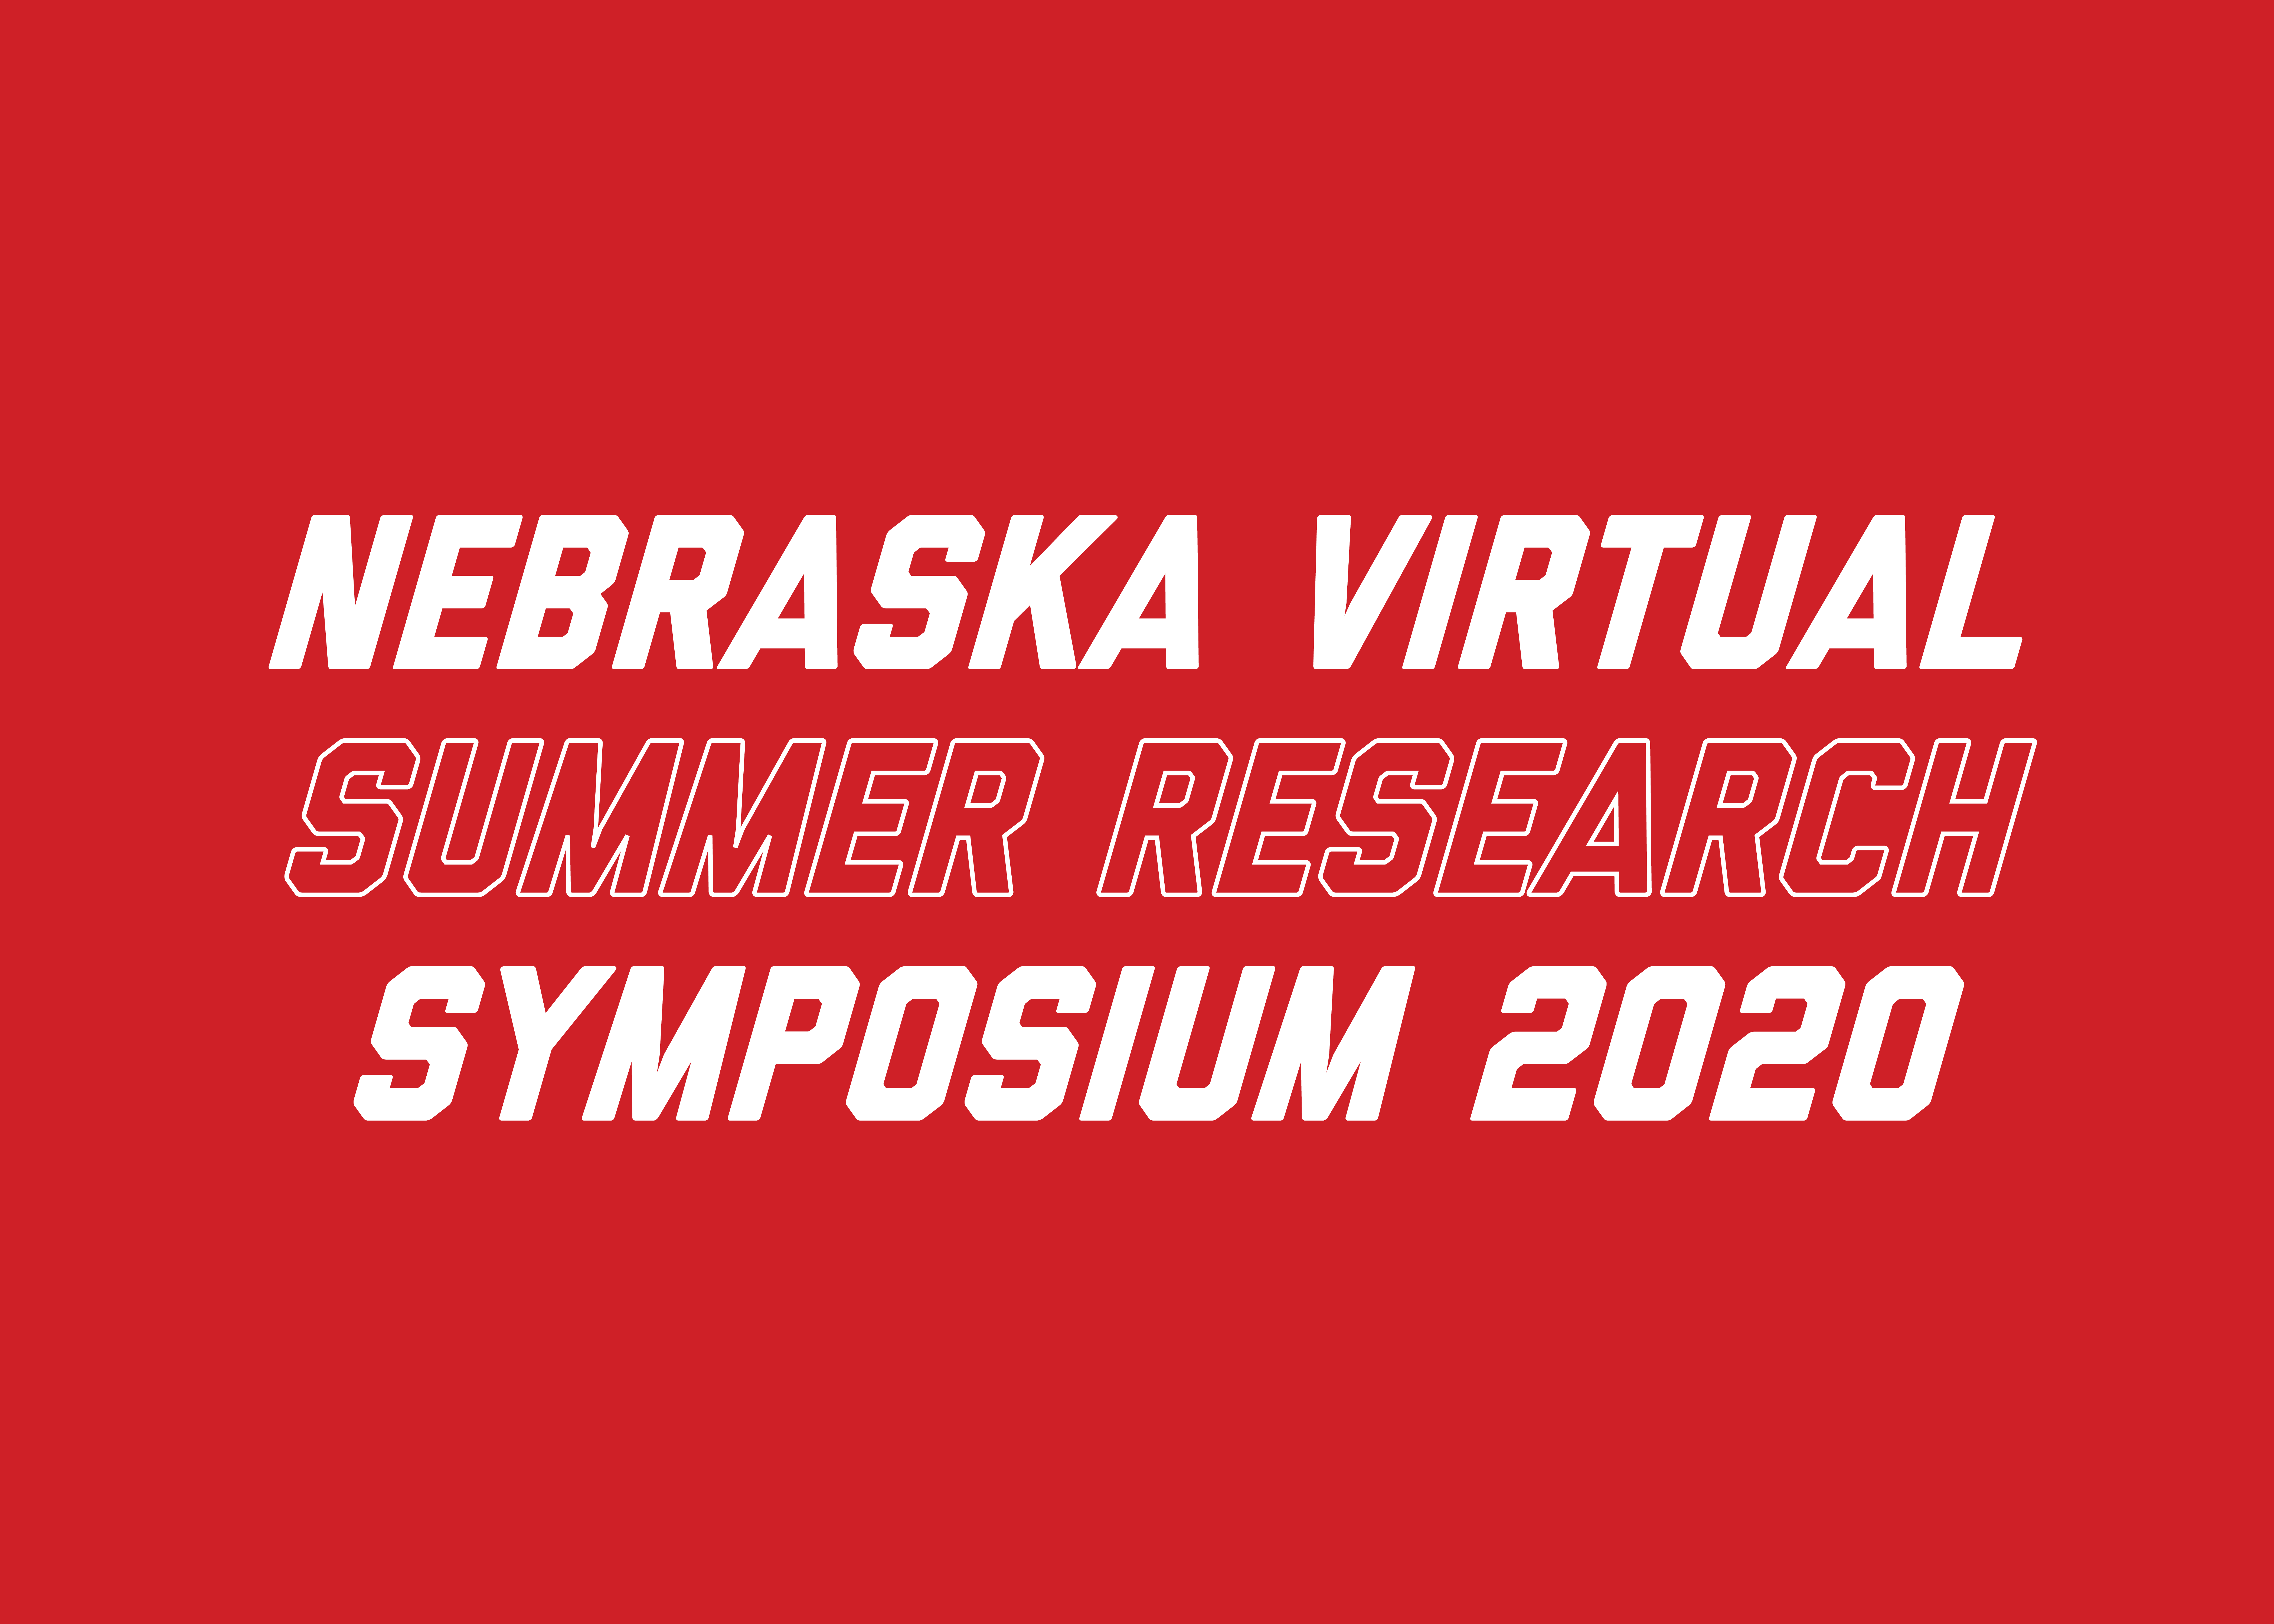 Nebraska Virtual Summer Research Symposium 2020 Image